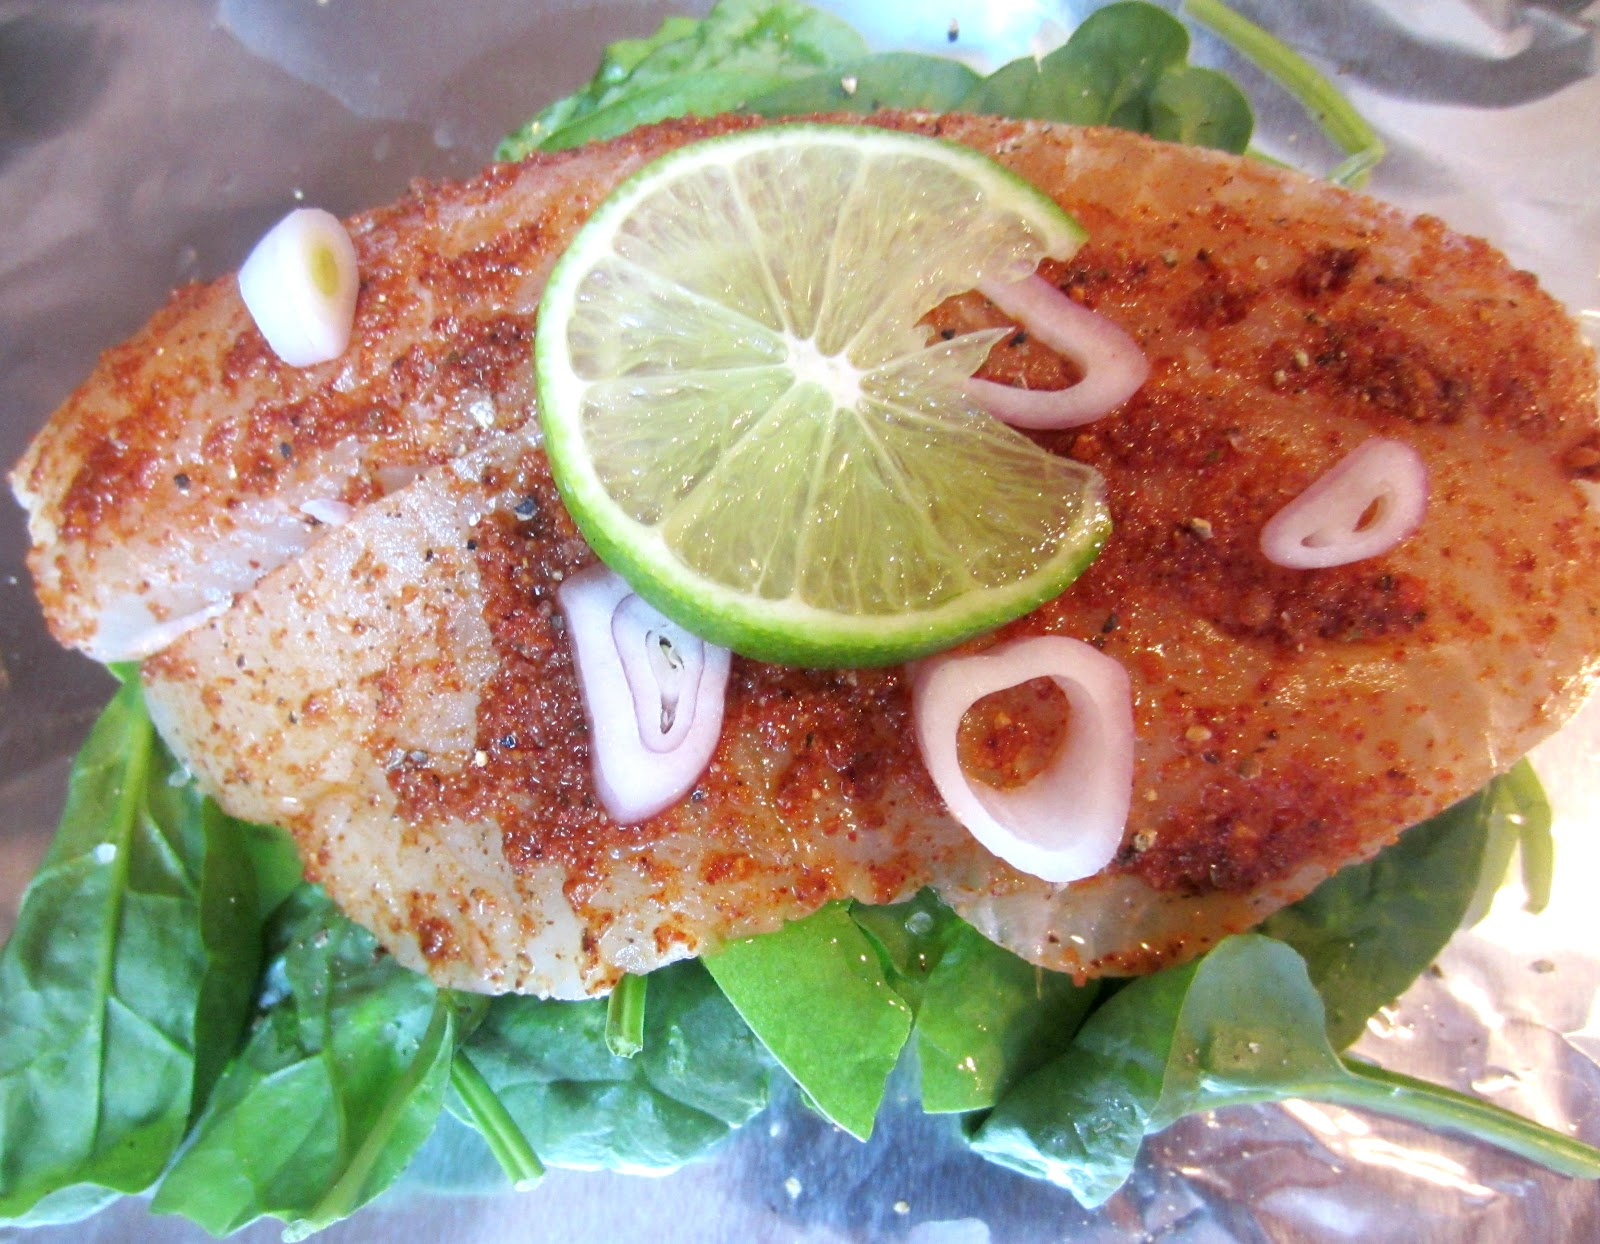 How to Season Tilapia http://mrmrsbeeze.blogspot.com/2012/06/weekend-recap-grilled-chili-lime.html